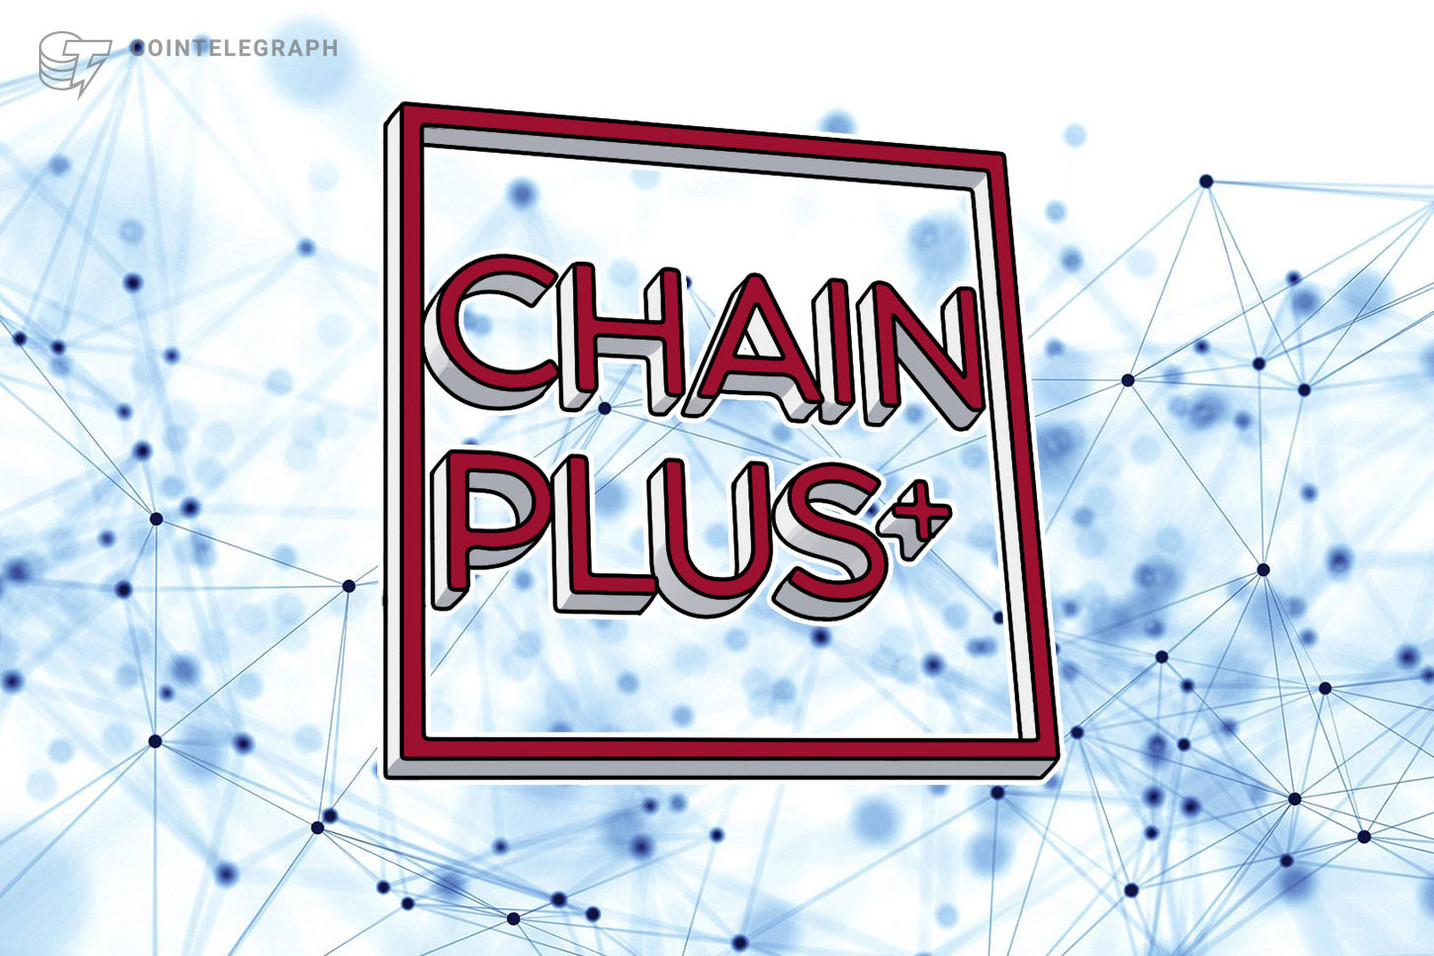 2019 Blockchain Convergence Summit: Chain Plus+ Kicked Off with Great Fanfare… Attended by All Major Blockchain Investors